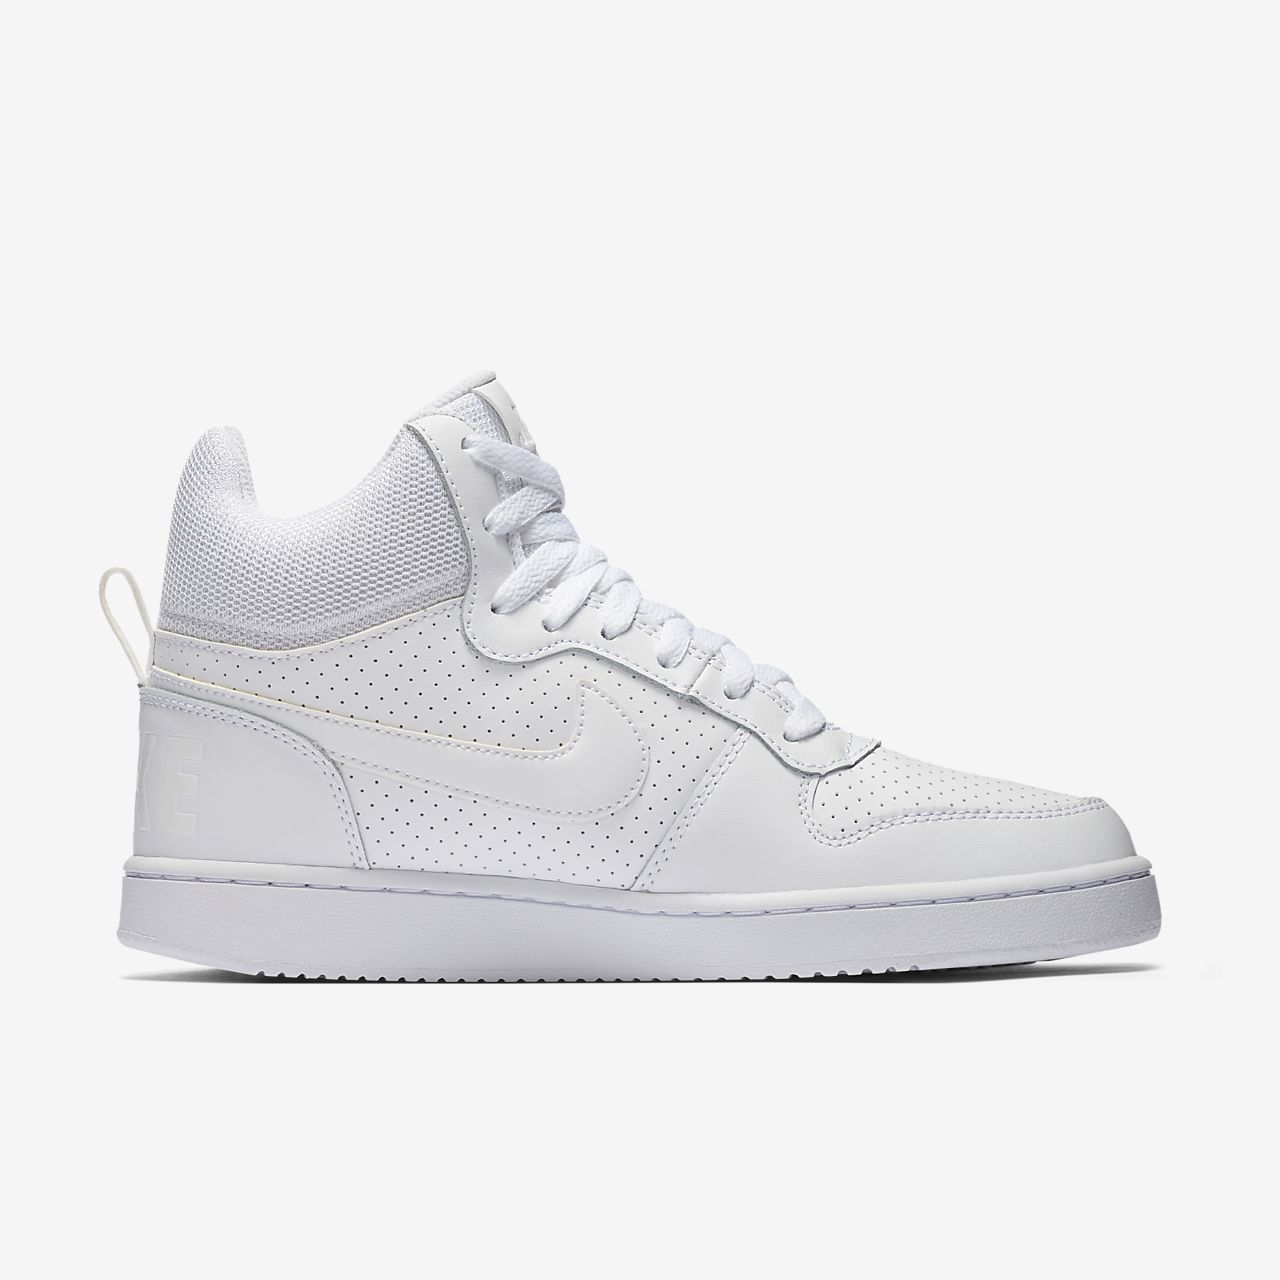 Zapatilla WMNS Court Borough Mid Blanca Nike QxydMIno